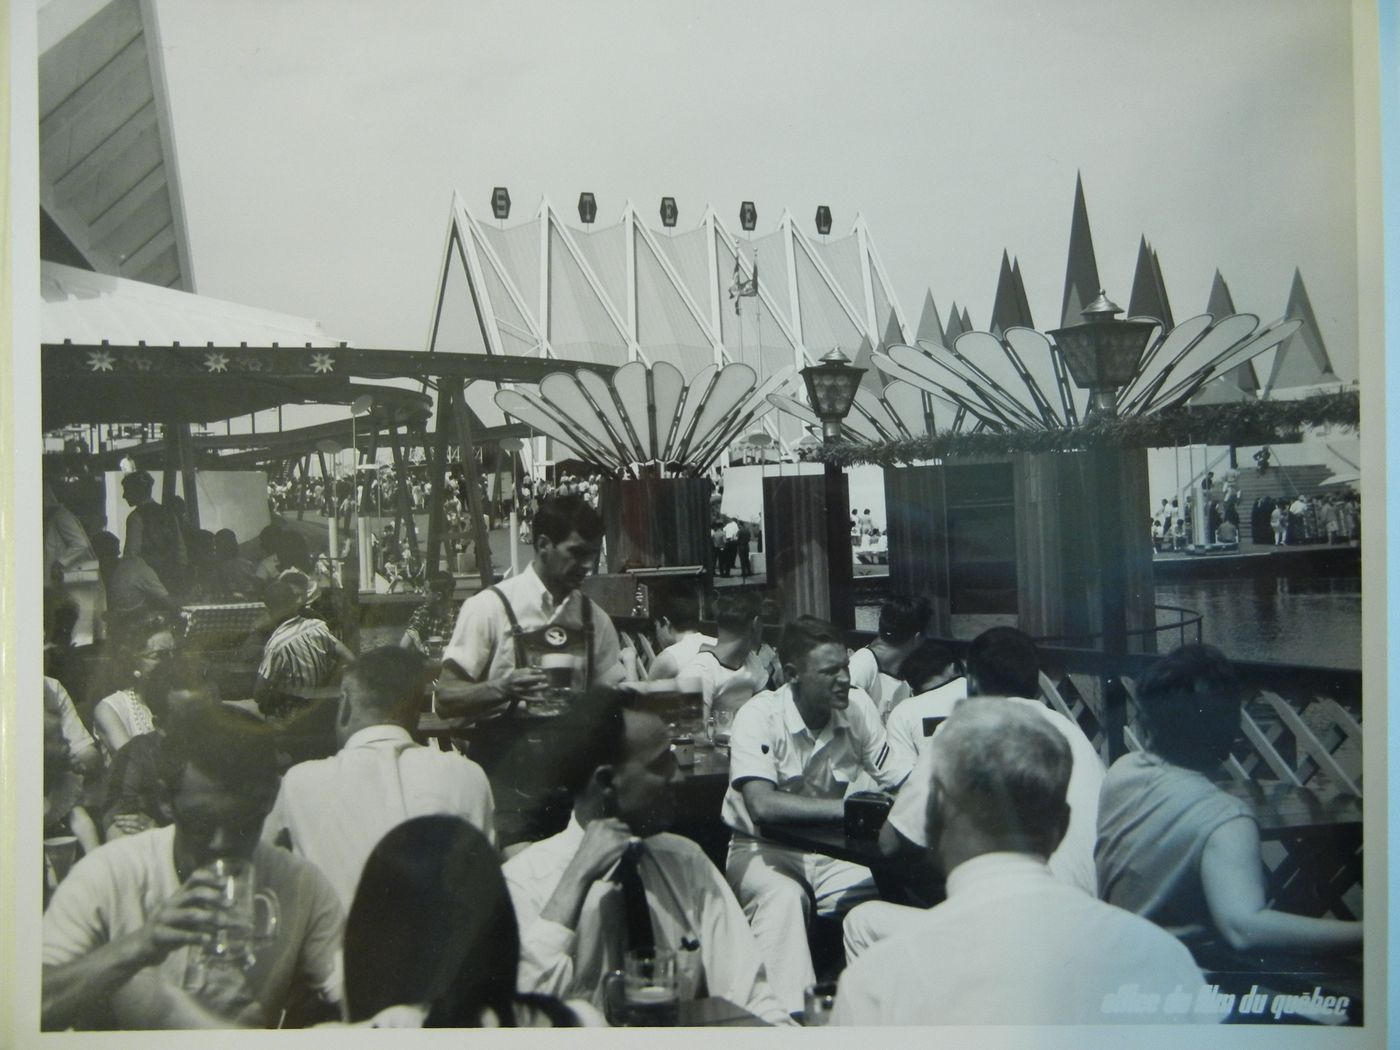 View of seated visitors drinking beer at the Expo-Services C with the Steel Pavilion in background, Expo 67, Montréal, Québec